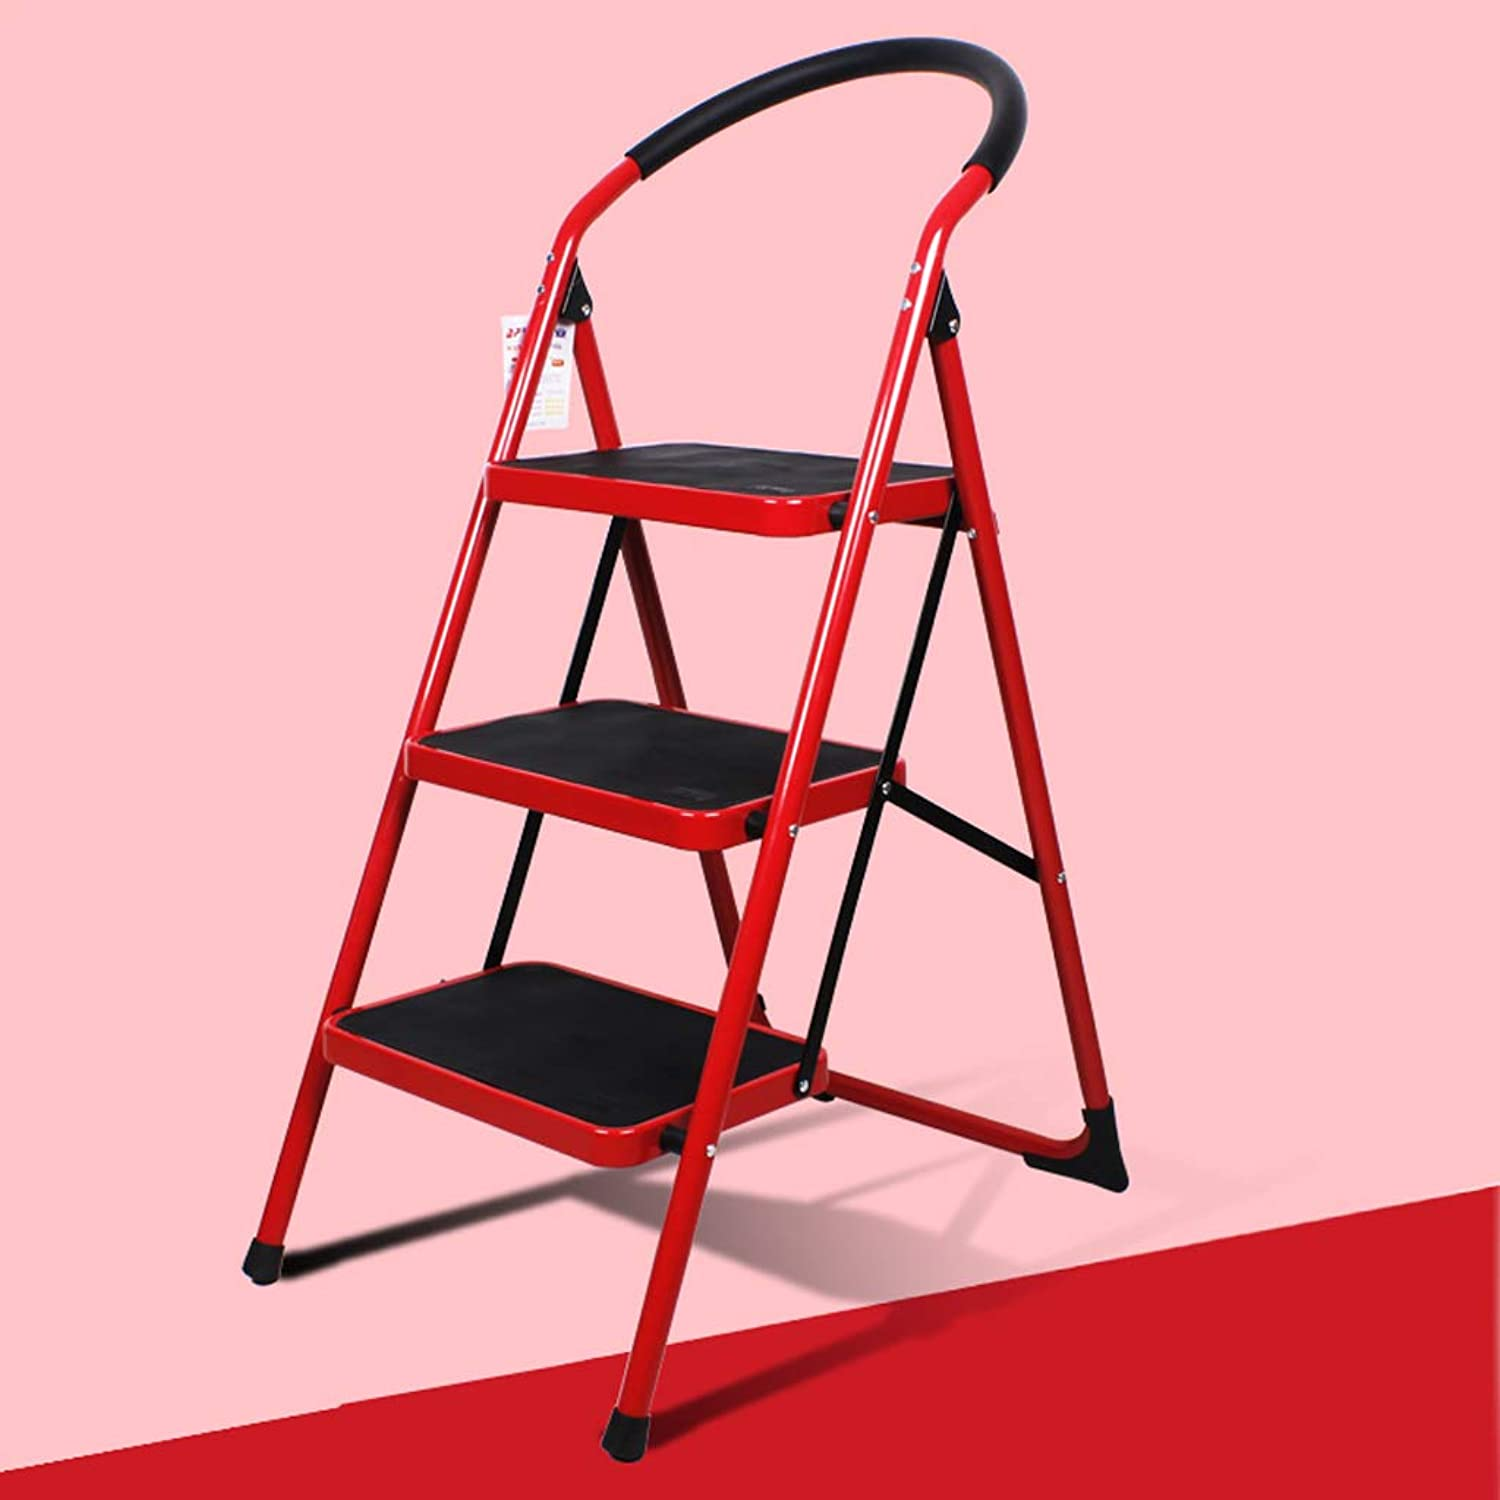 HBJP Step Stool Home Folding Ladder Ladder Thickening Climbing Ladder Three-step Small Ladder Stool Indoor Multi-function Staircase Staircase stool (color   Red)